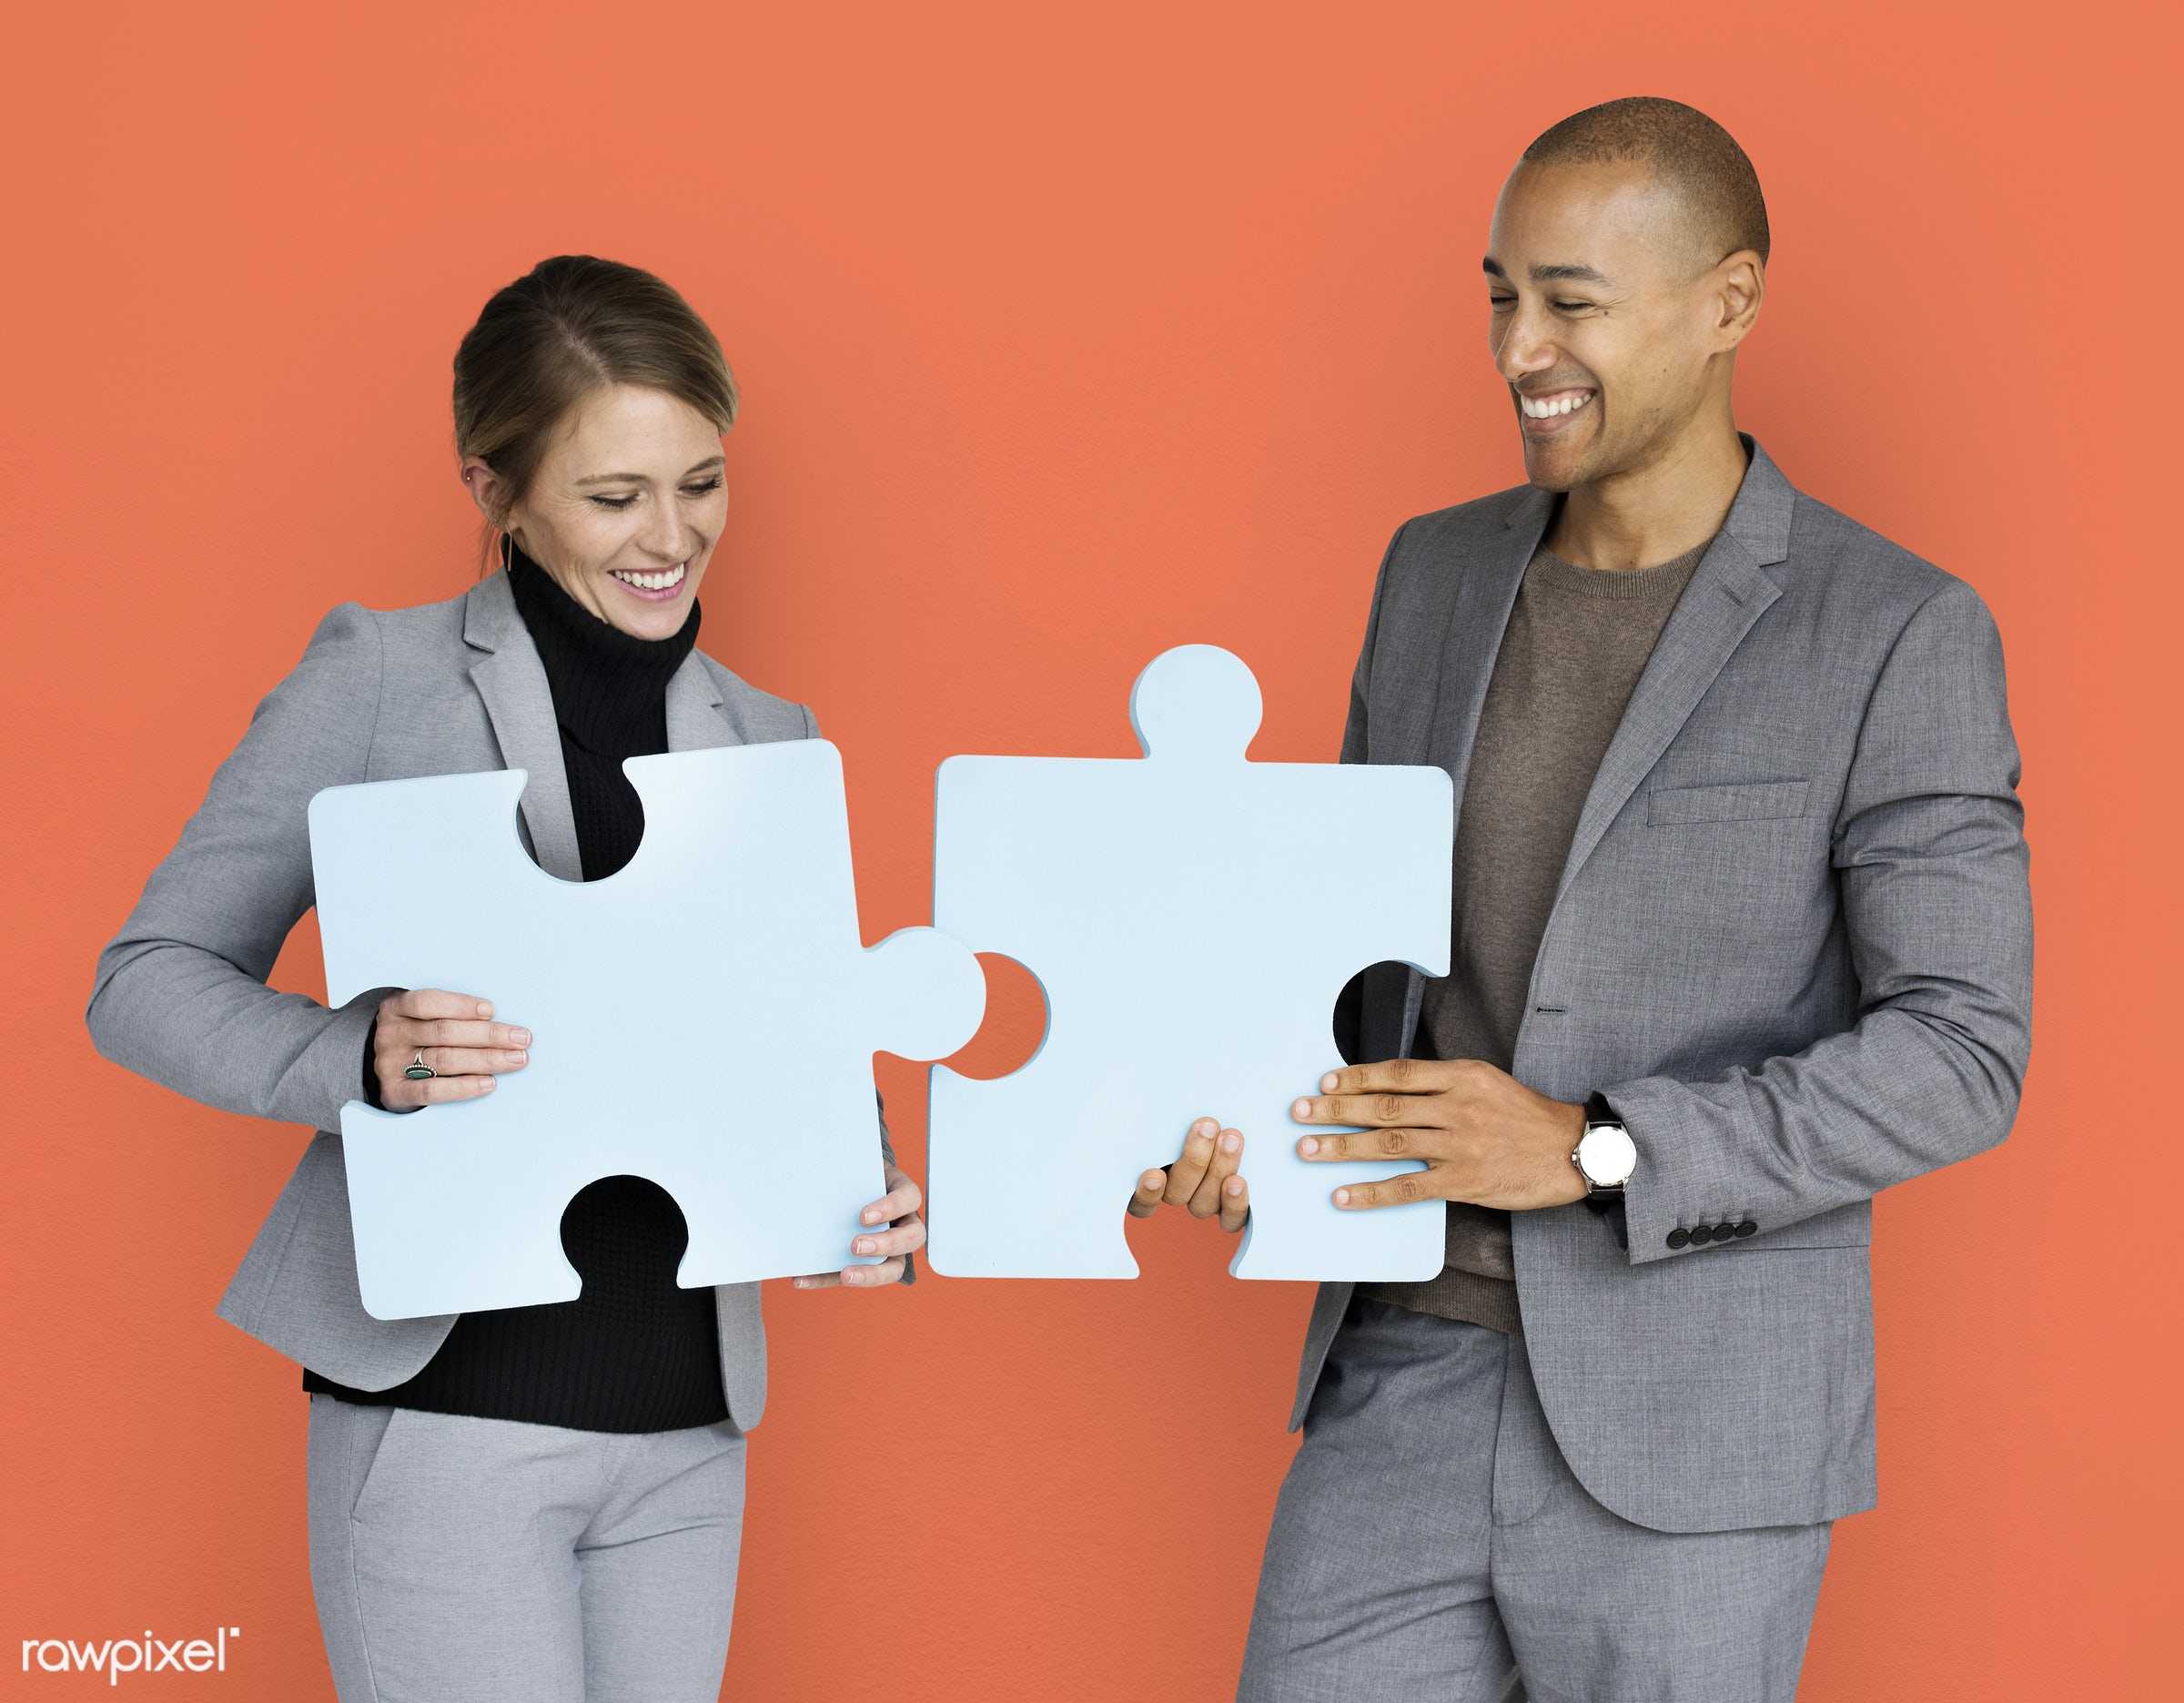 studio, expression, person, jigsaw, holding, people, teamwork, woman, cheerful, smiling, orange, isolated, connection,...